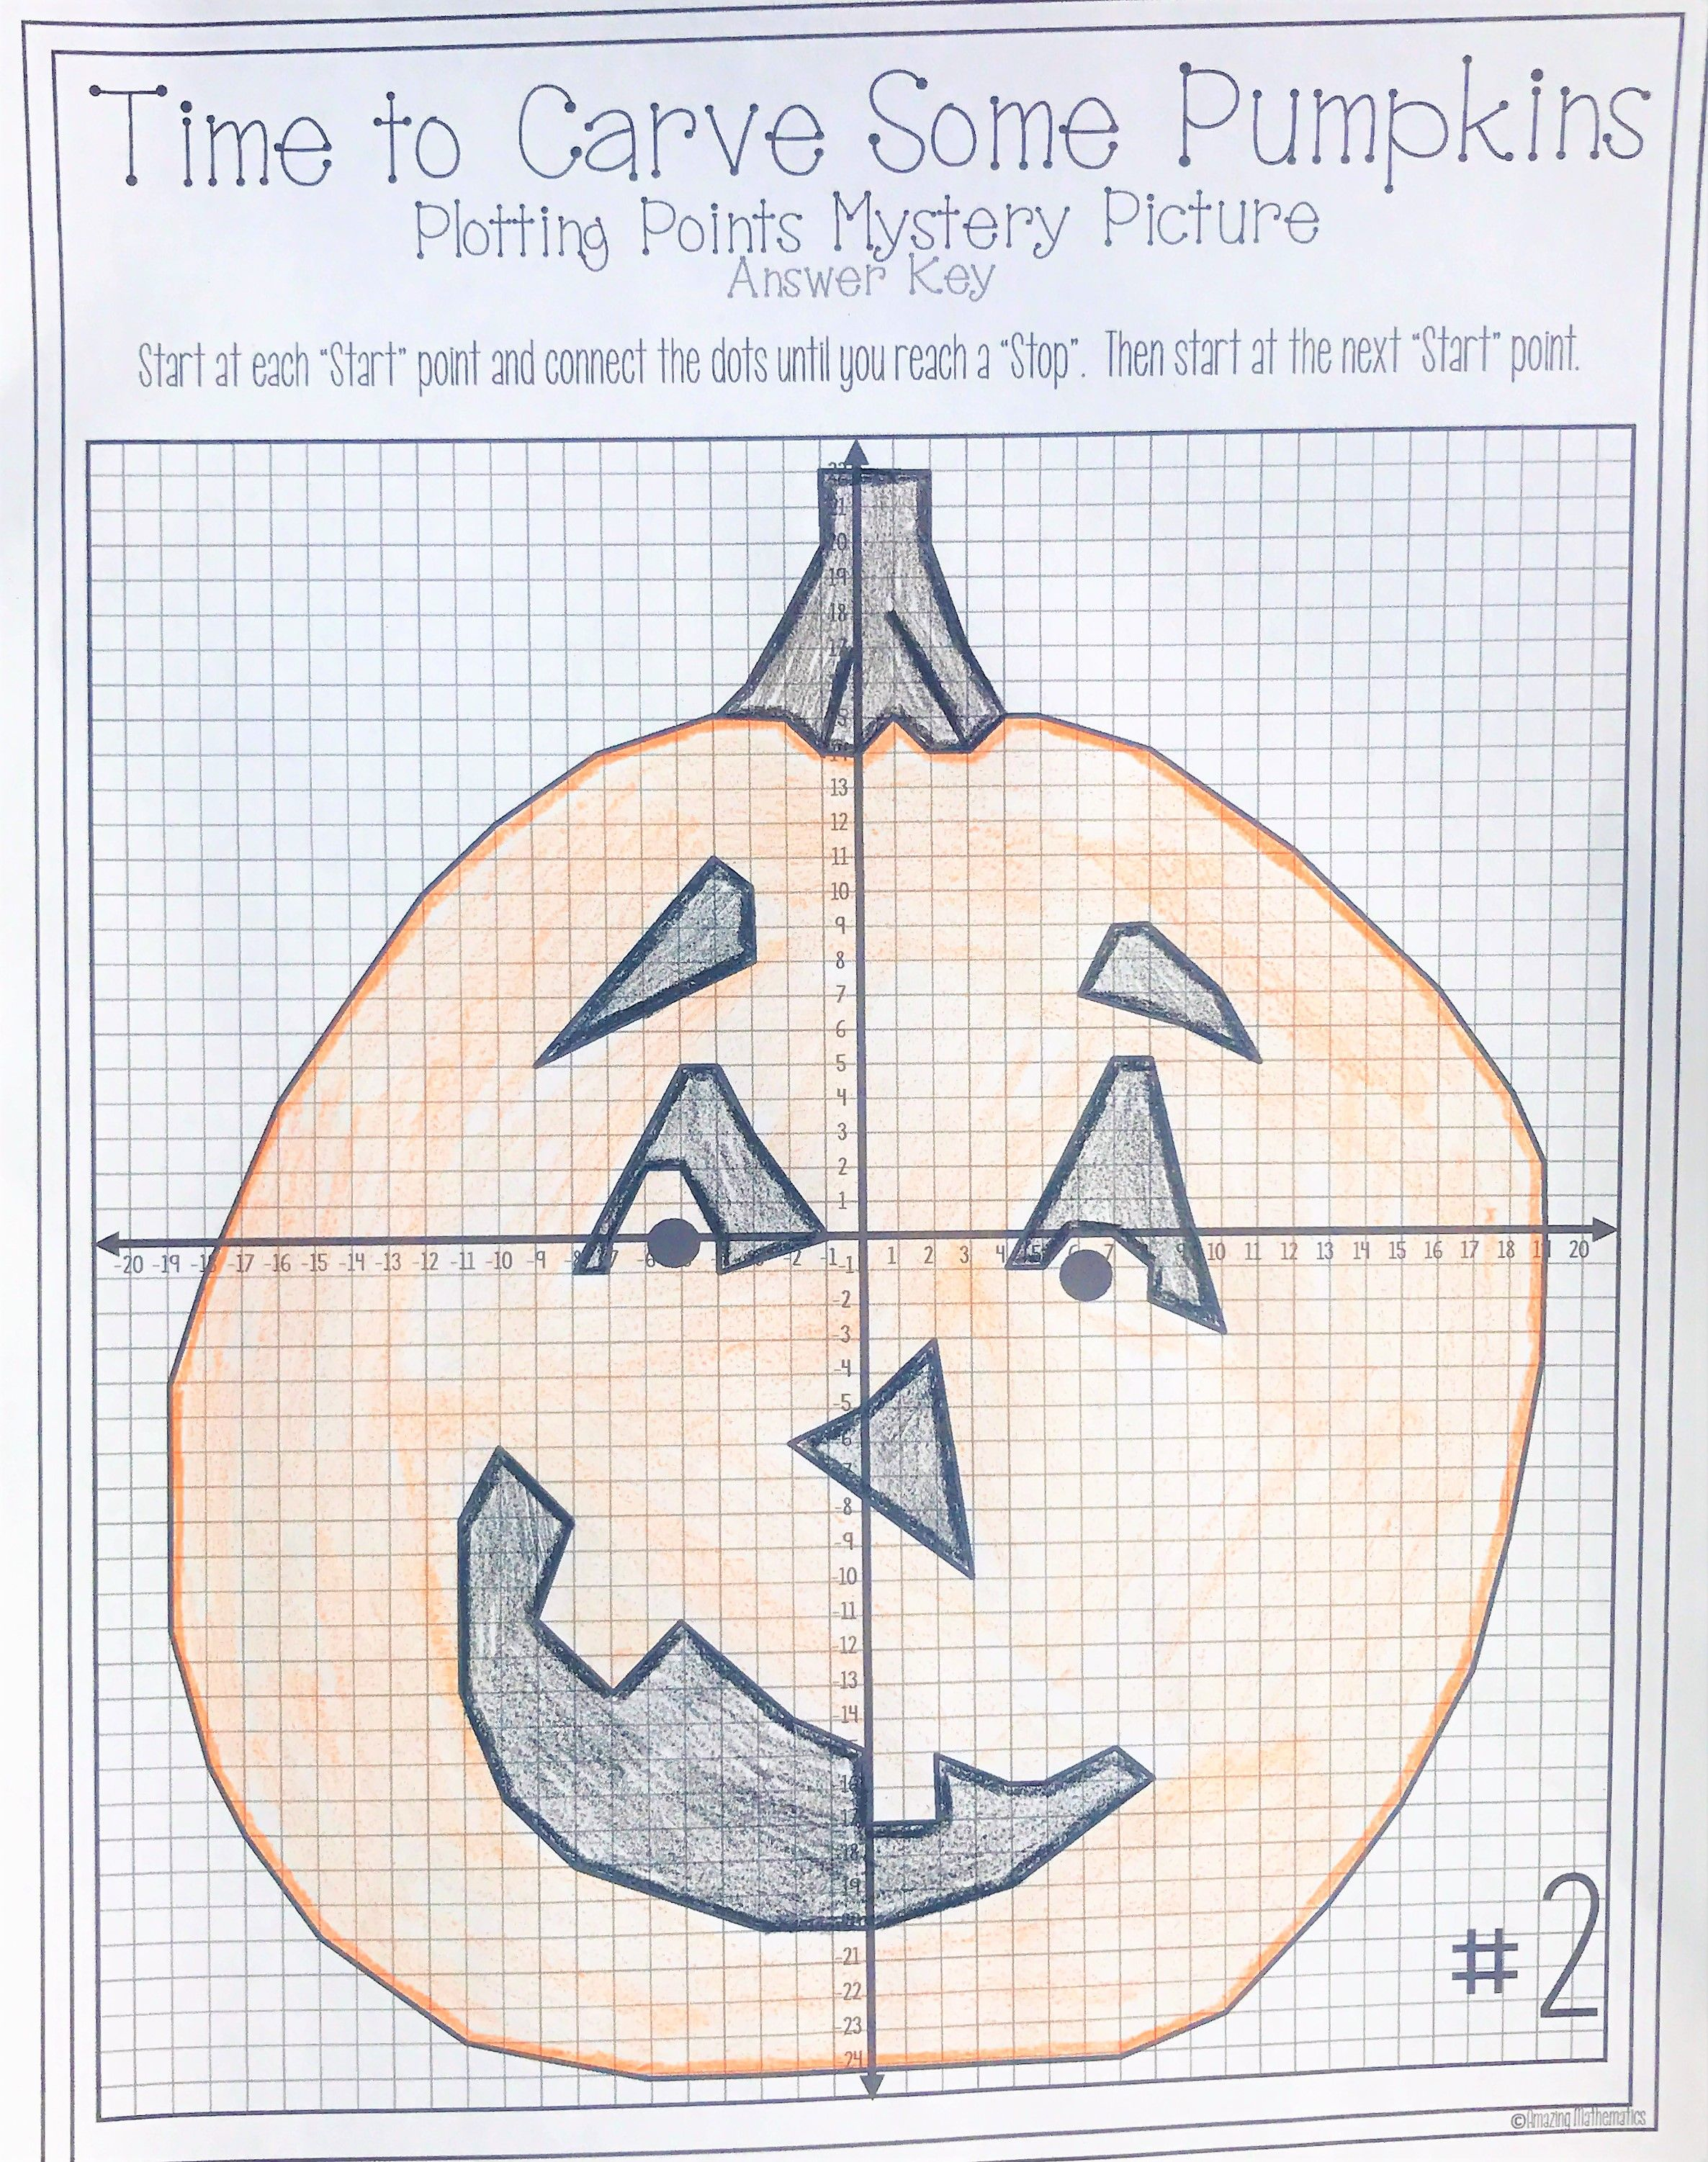 worksheet Pumpkin Coordinate Graph halloween pumpkin carving plotting points mystery picture picture